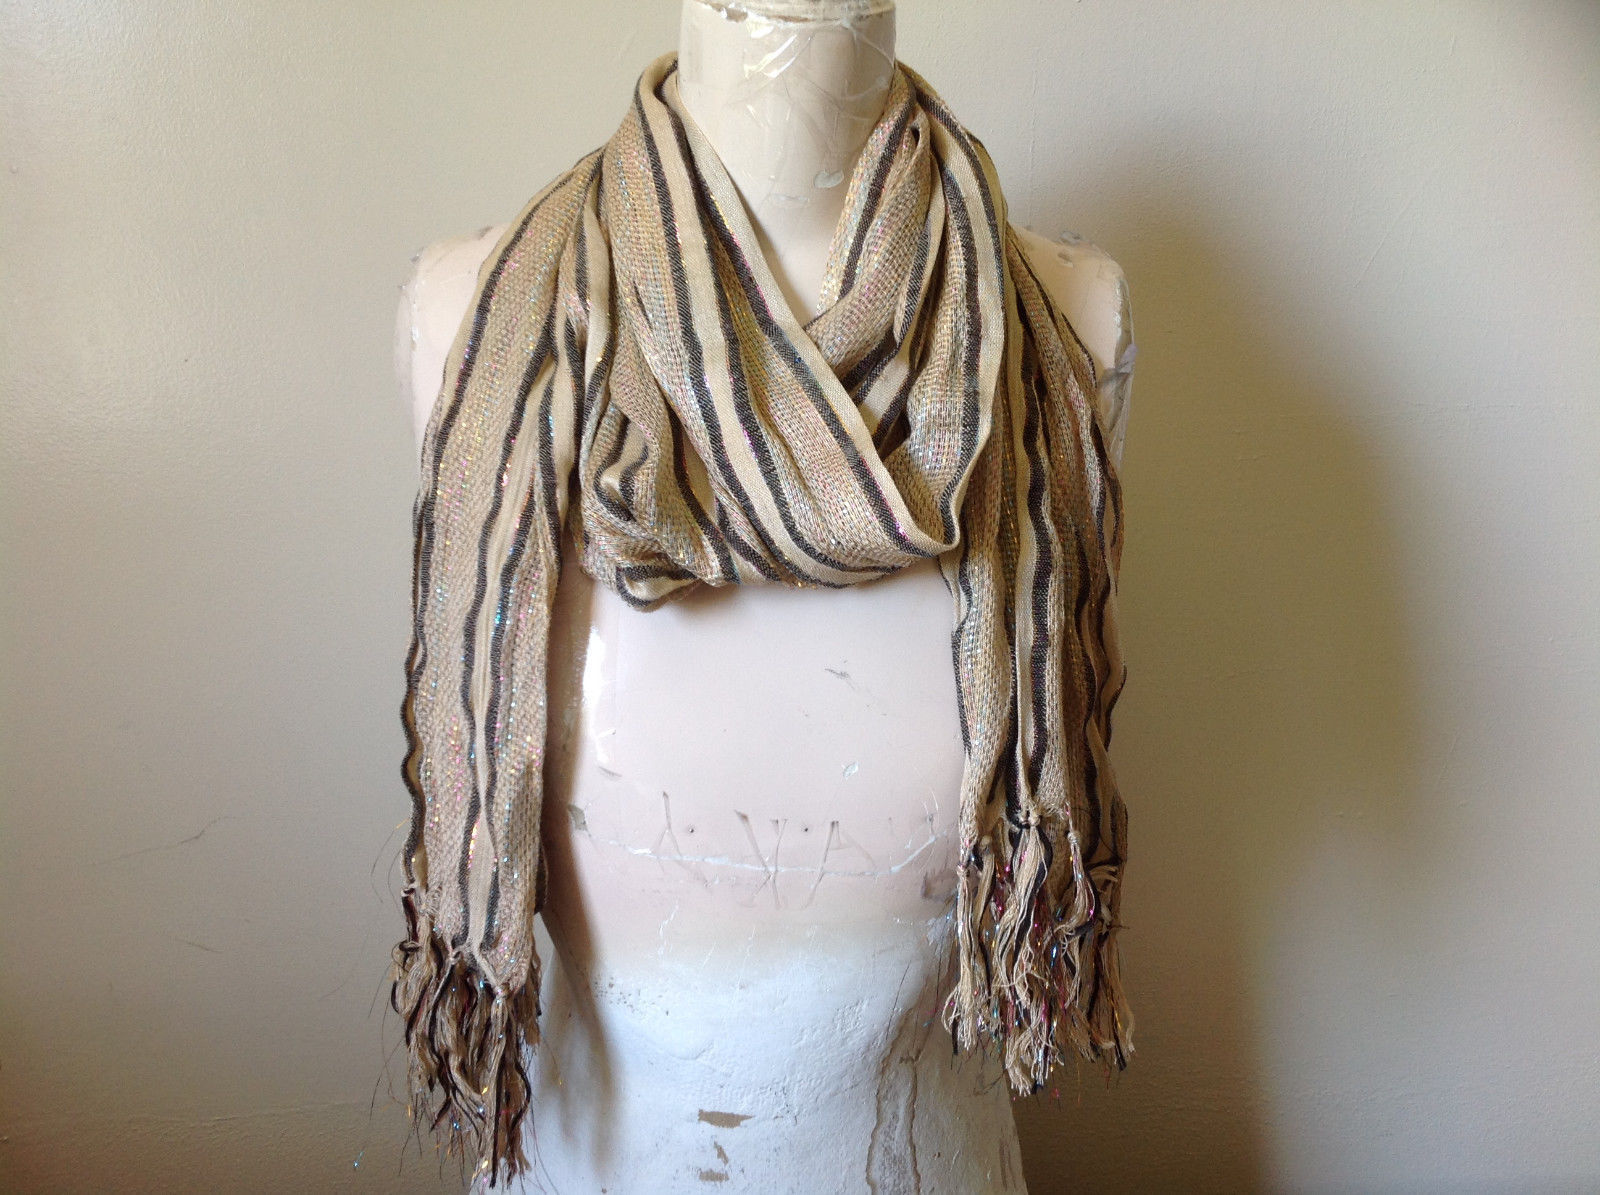 Tan Striped Rainbow Metallic Stripes Tasseled Fashion Scarf No Tag